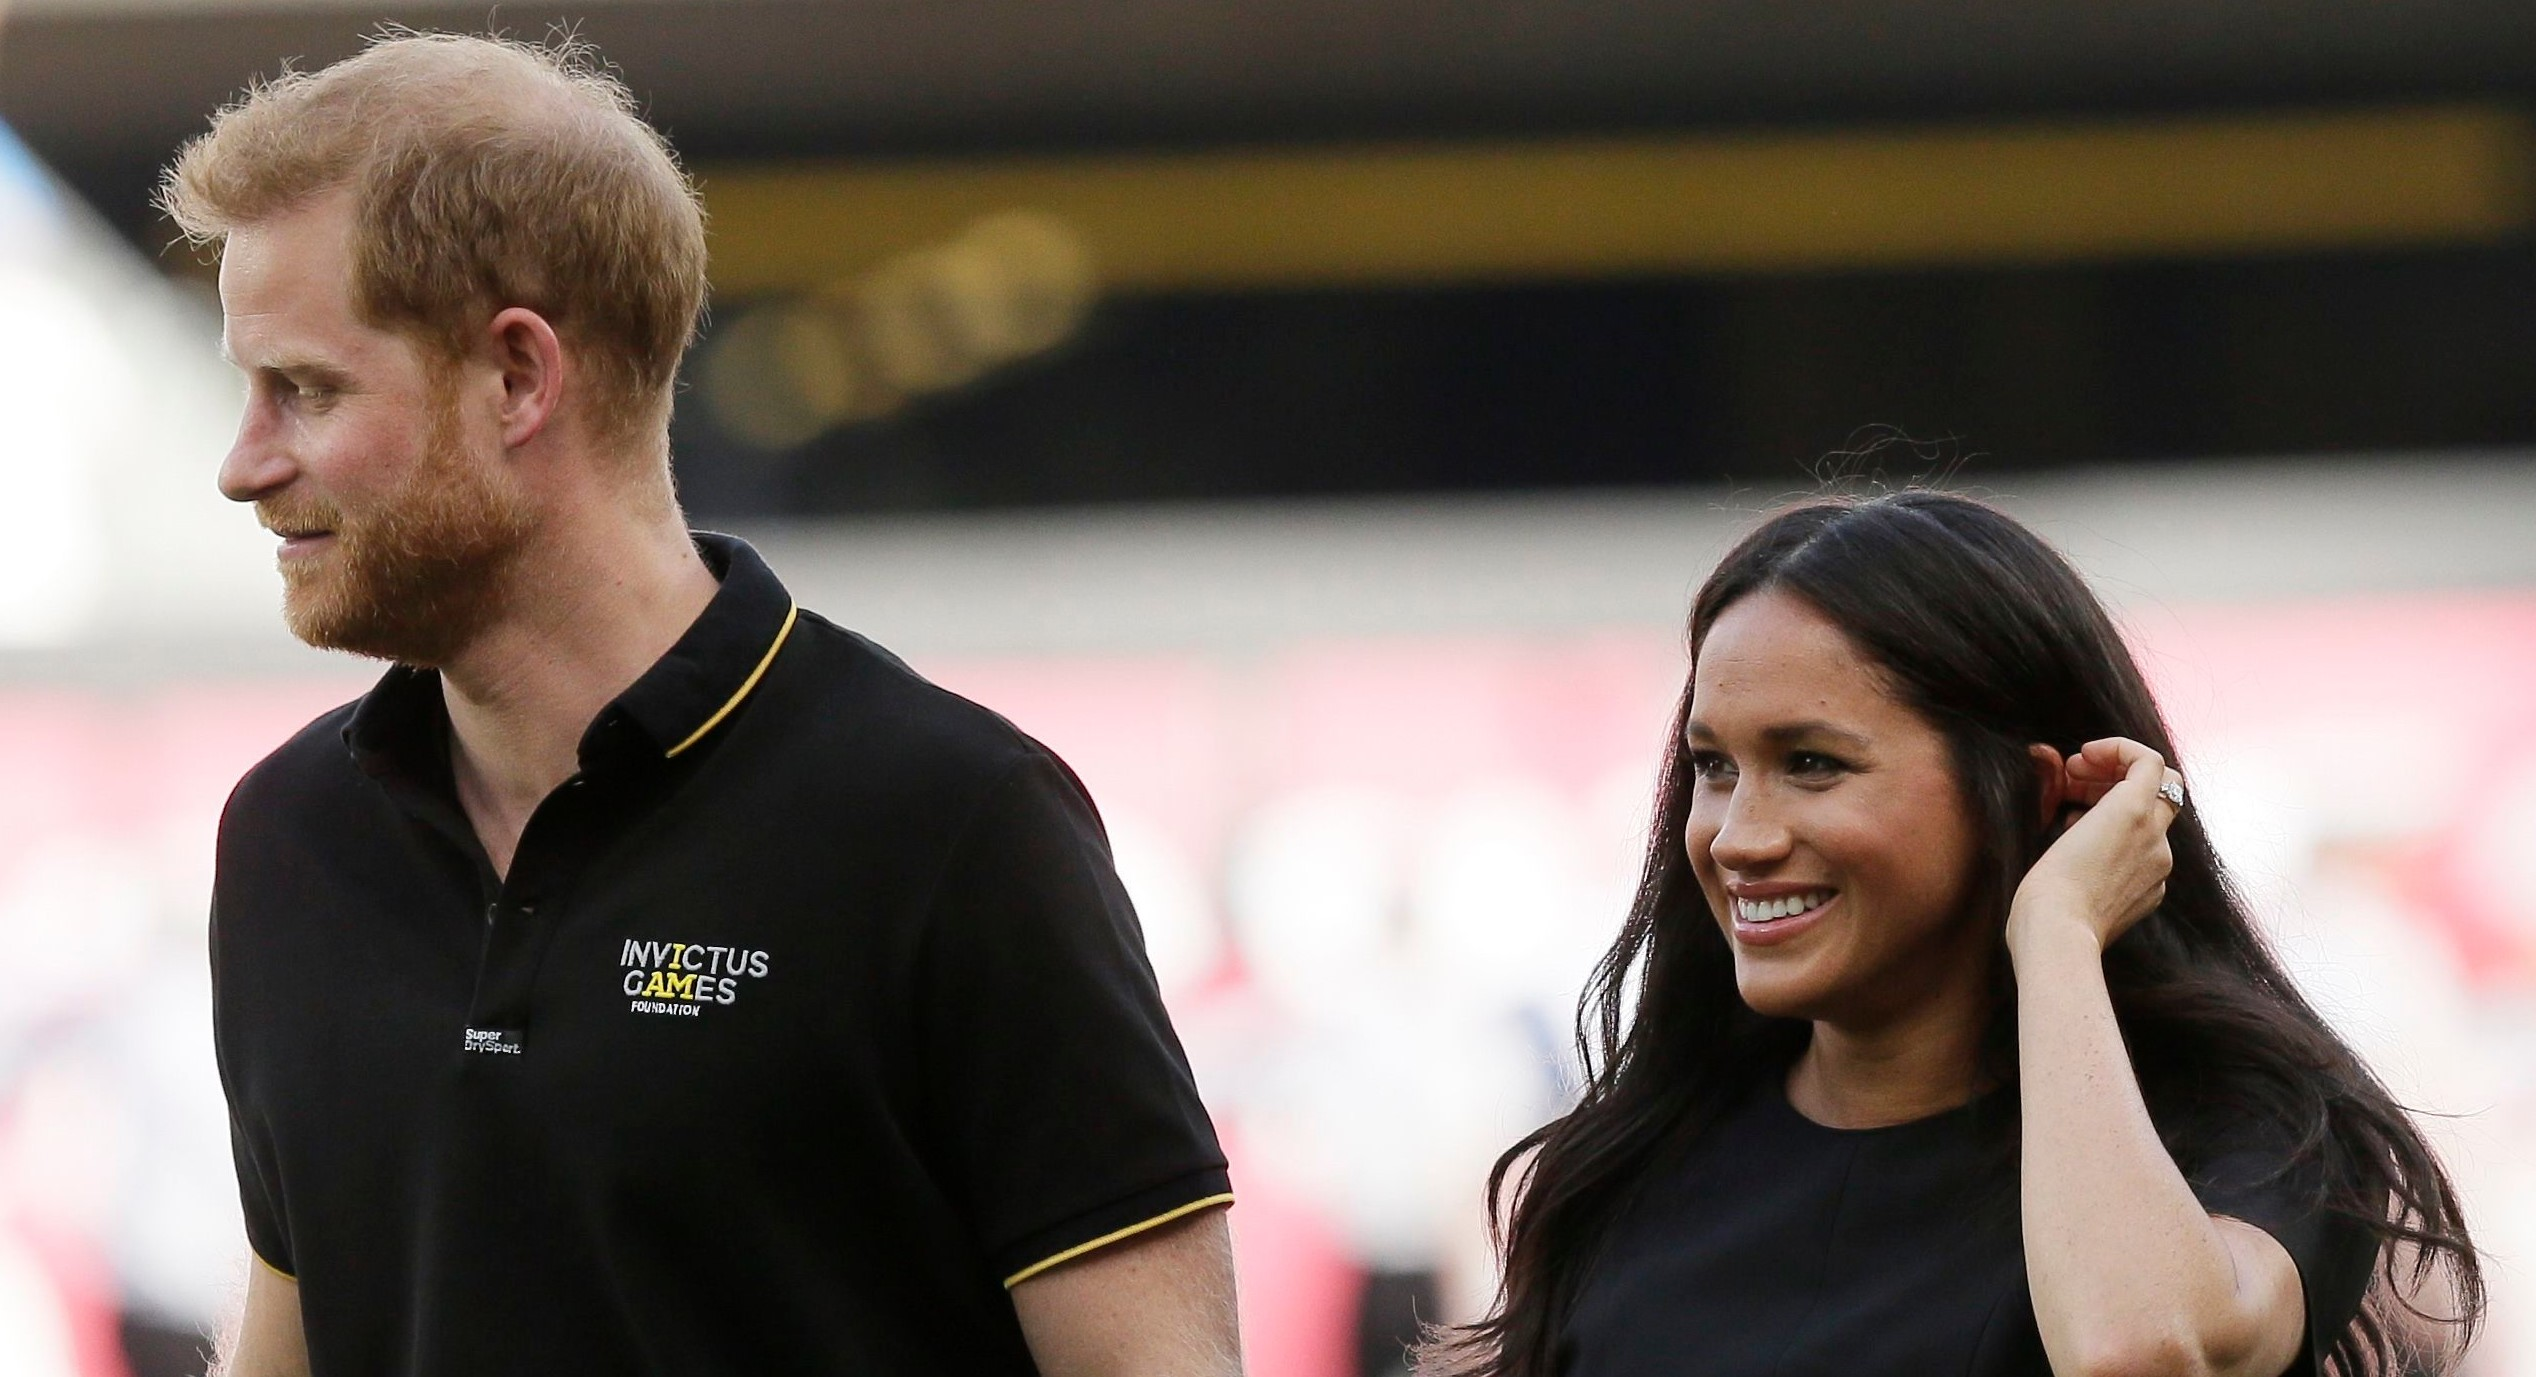 Harry and Meghan 'not invited to pals' parties because of their PDAs'